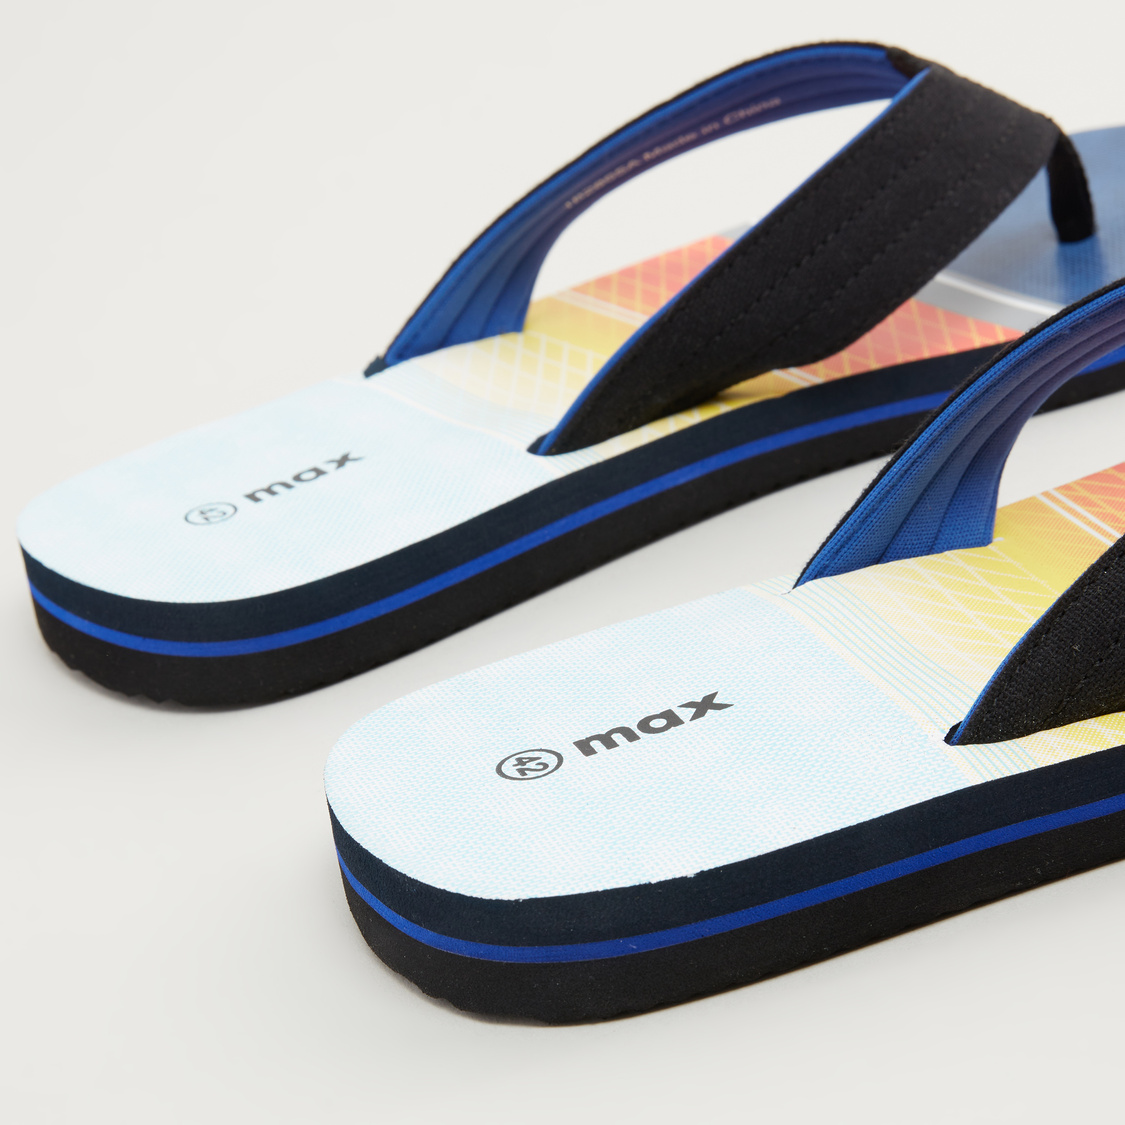 Printed Slippers with Stitched Straps